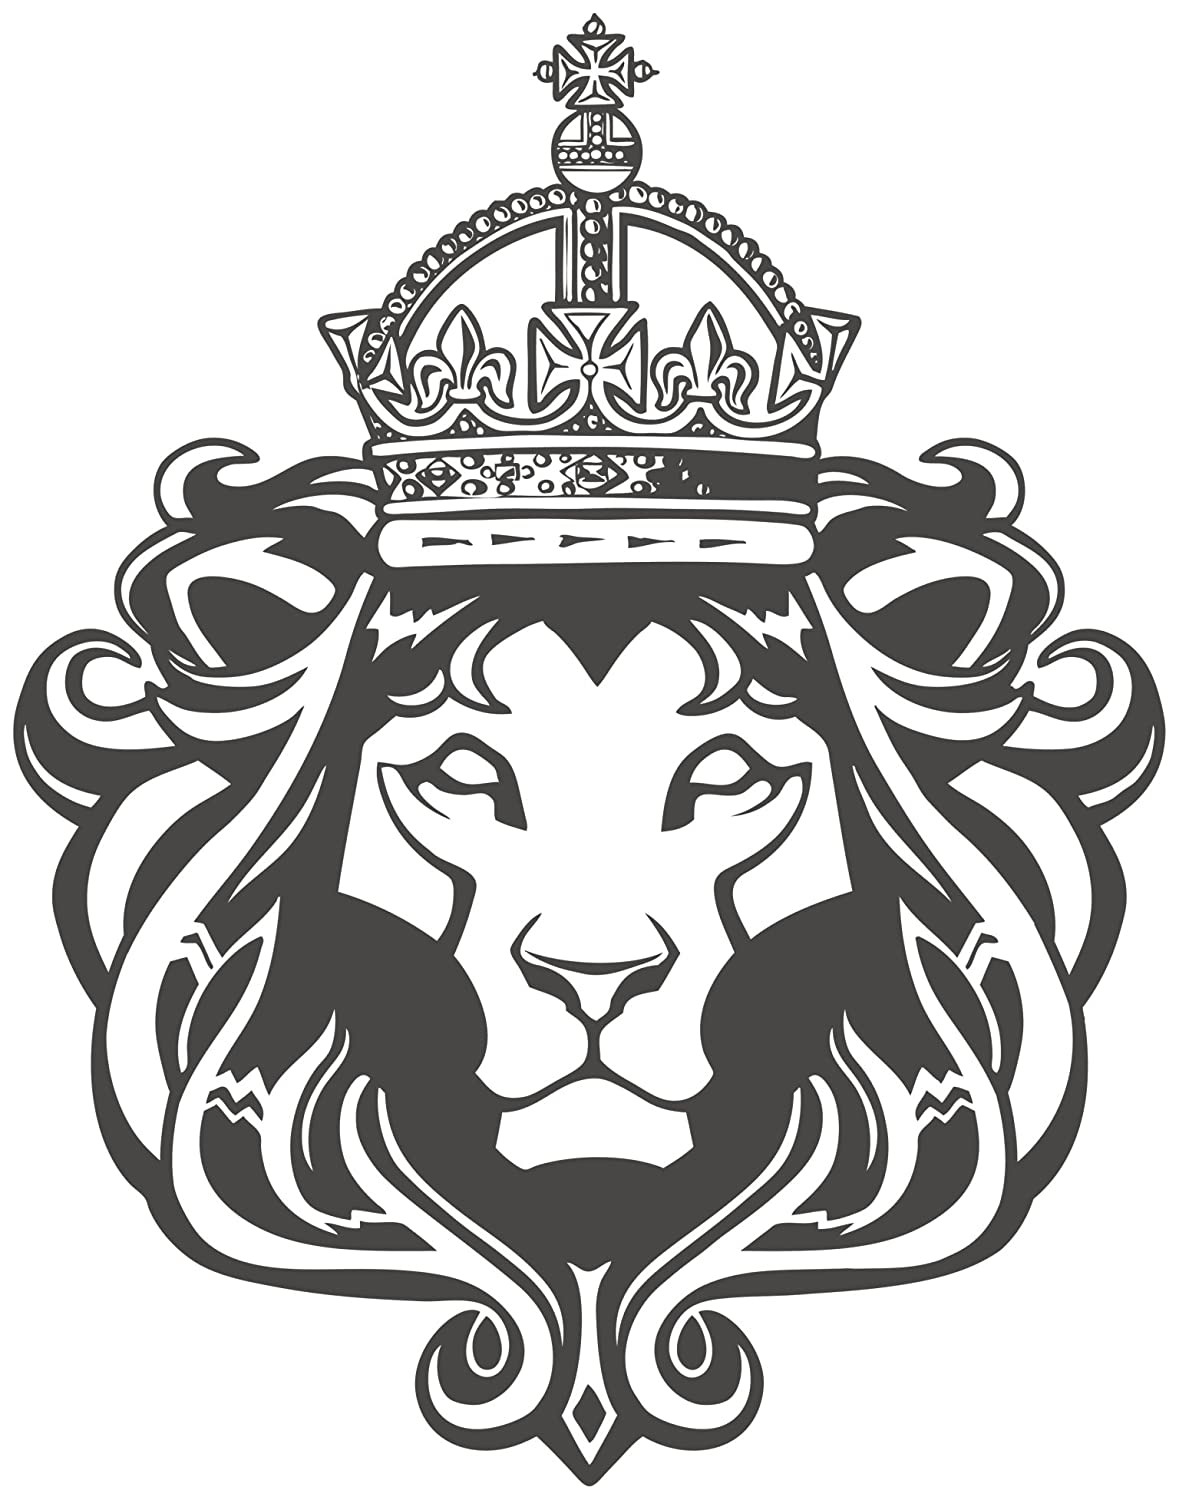 Amazoncom Royal Lion With Crown And Mane Black White Vinyl Decal